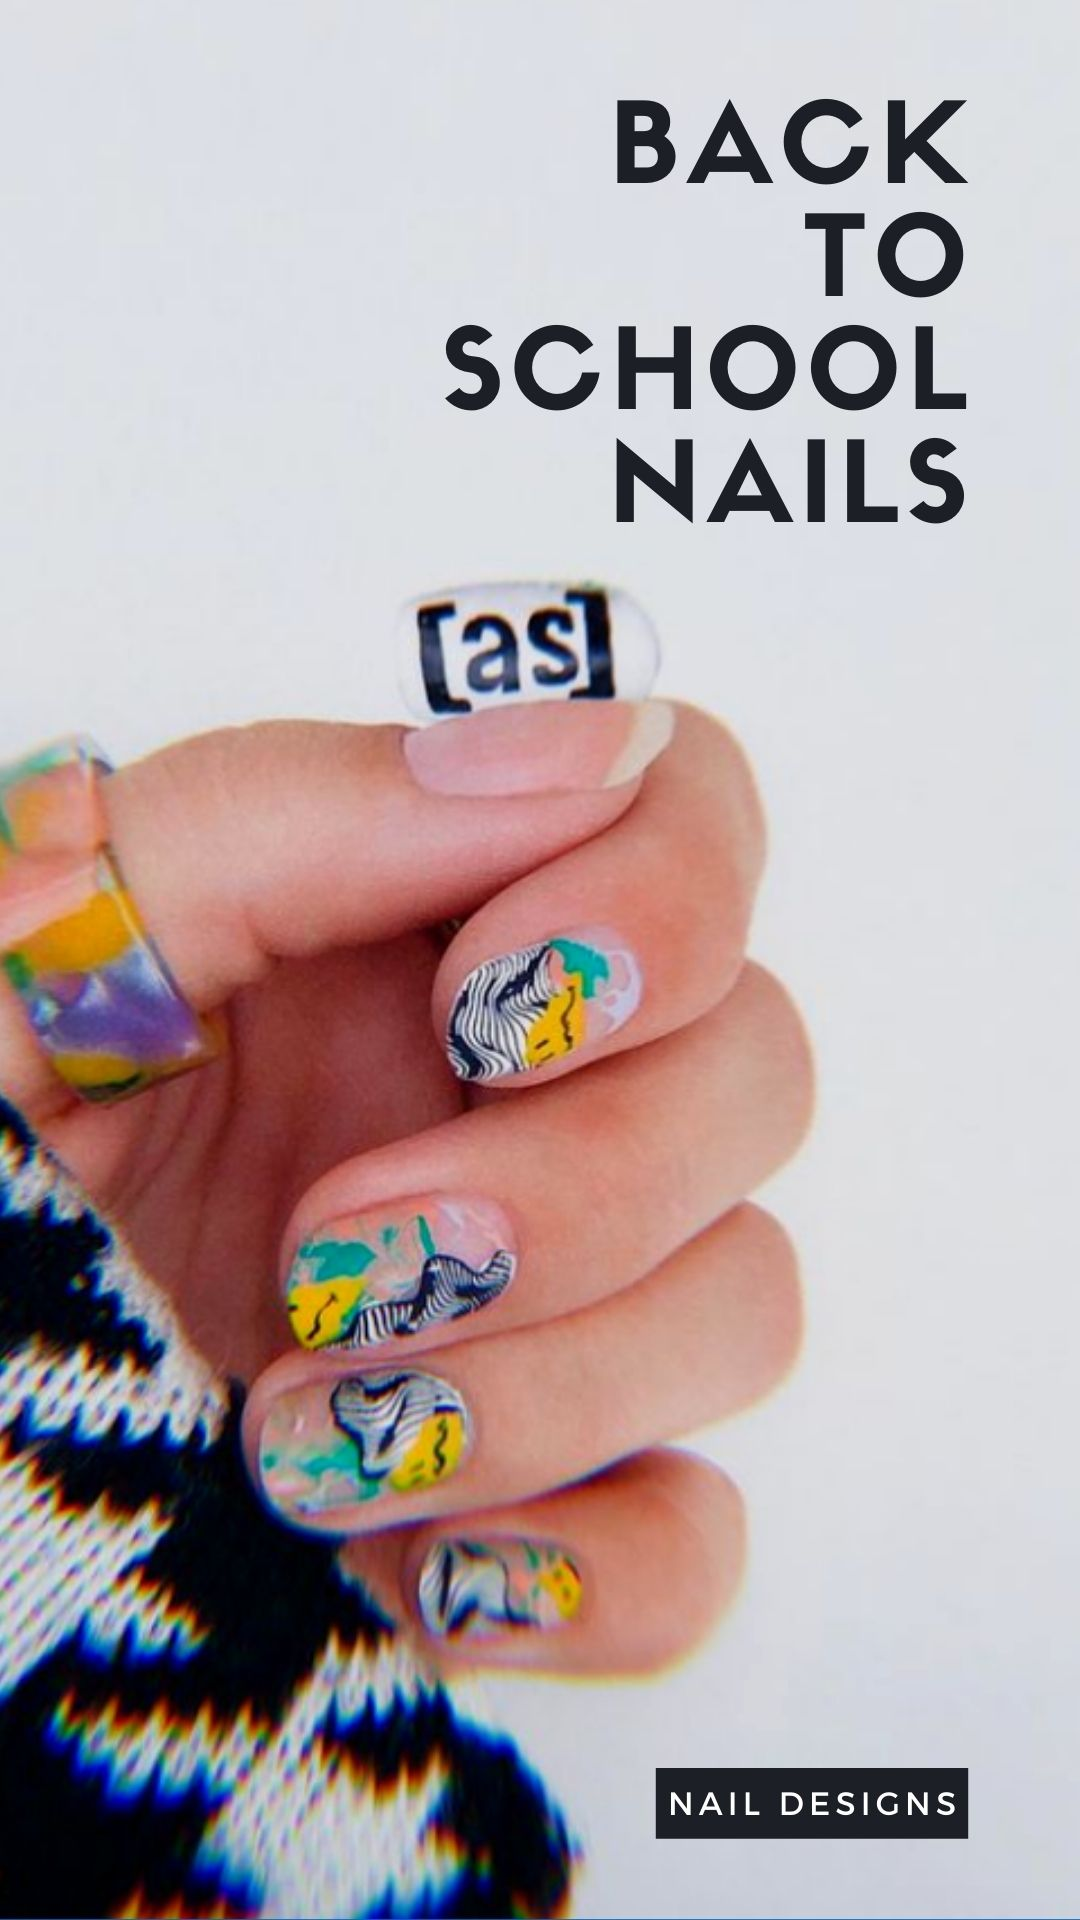 Back to school nails | Best summer nail art ideas and nail designs 2021